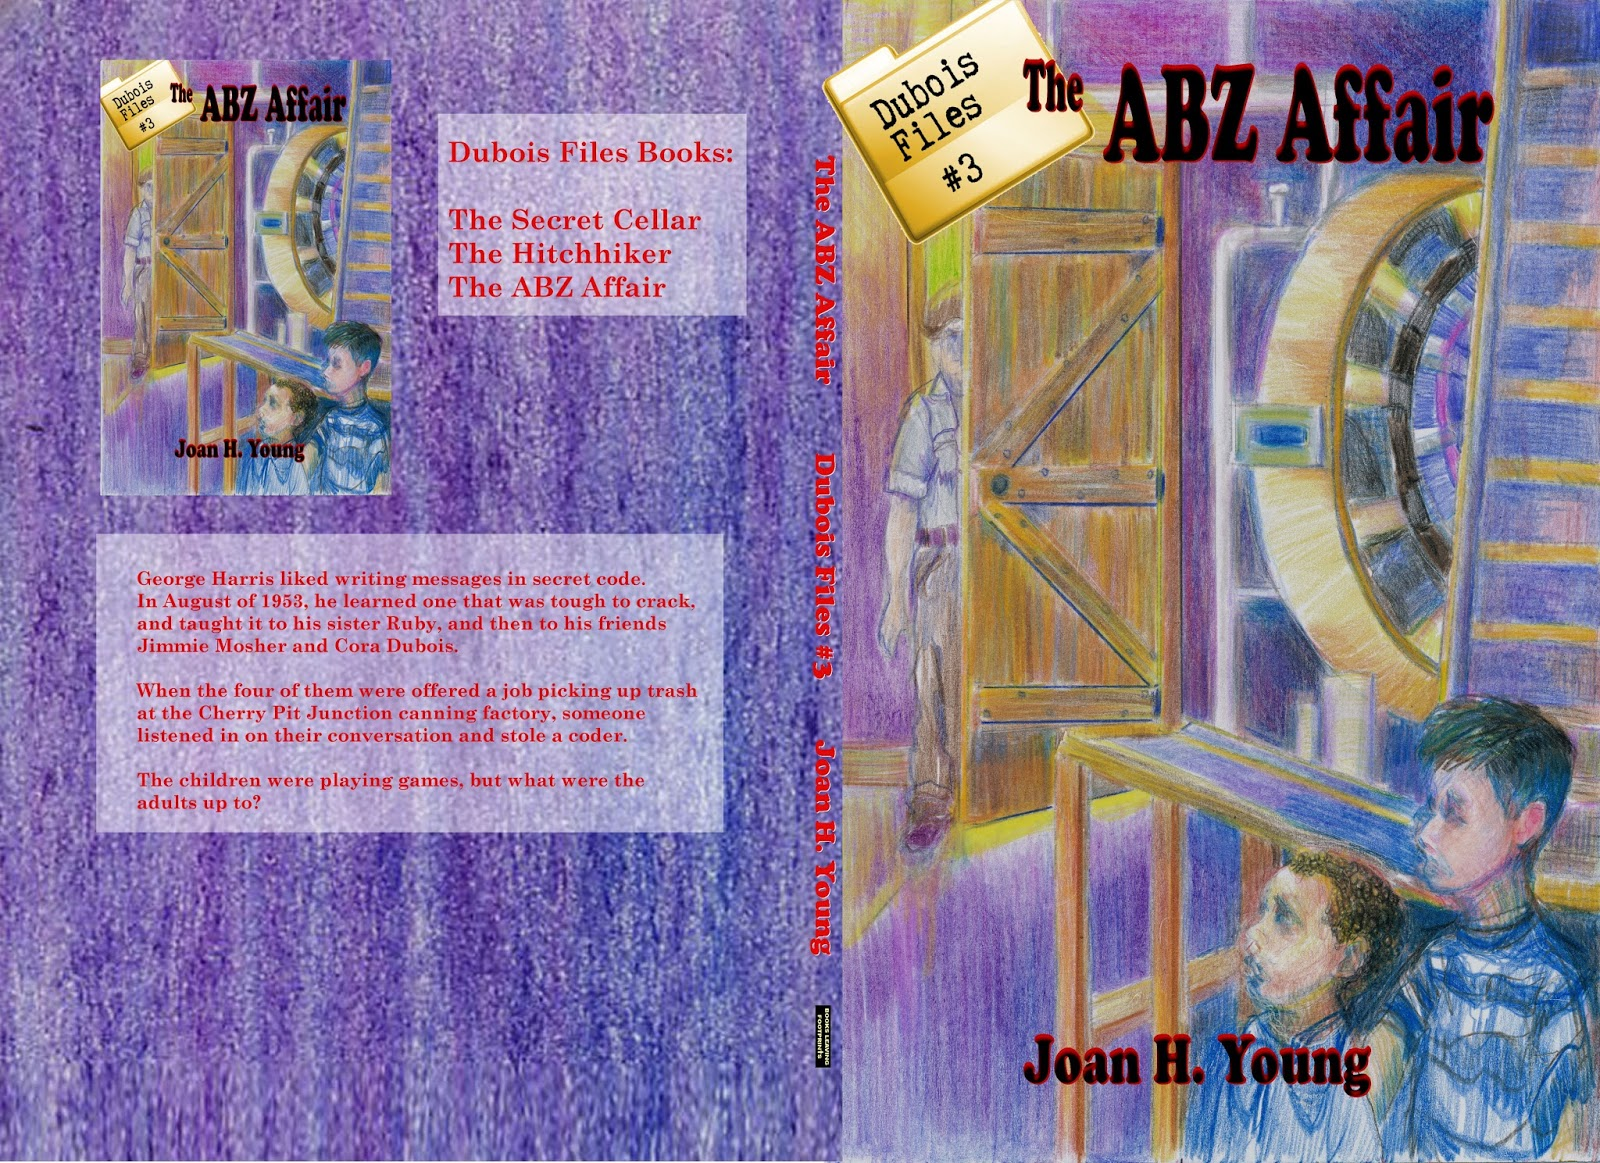 full cover for print edition of The ABZ Affair